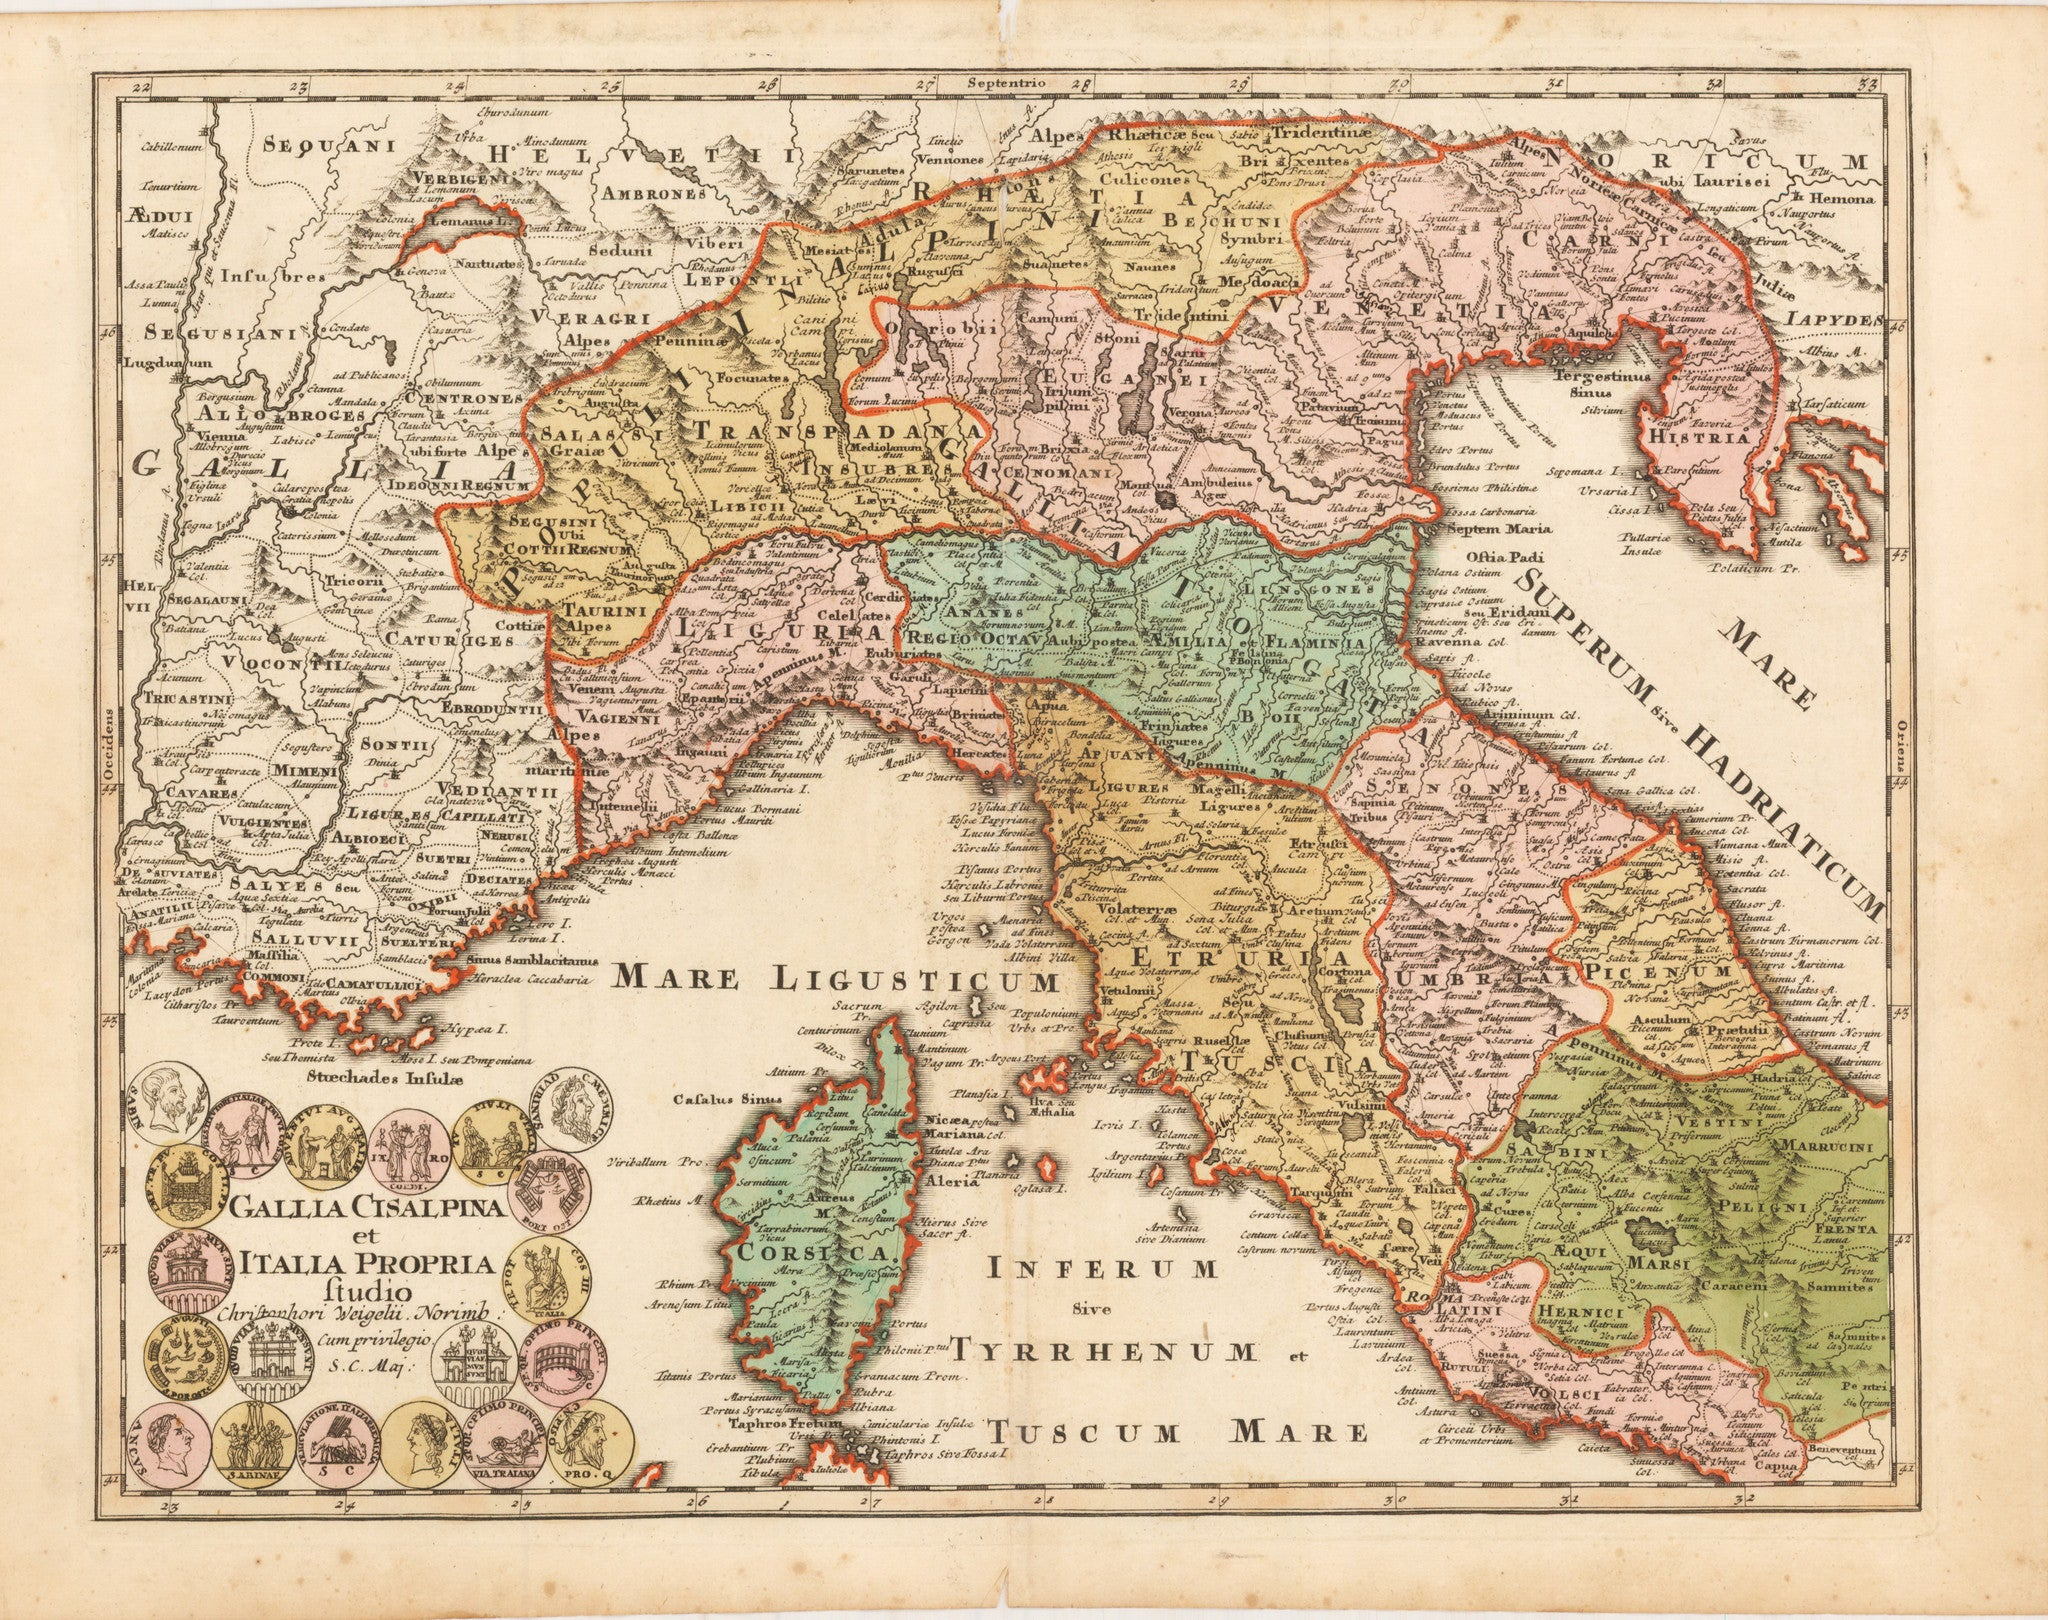 Gallia Cisalpina et Italia Propria By: Weigel Date: 1720 (published) Nuremberg Size: 12.25 x 15.5 inches - Antique, Vintage, Italy, Corsica, Weigel